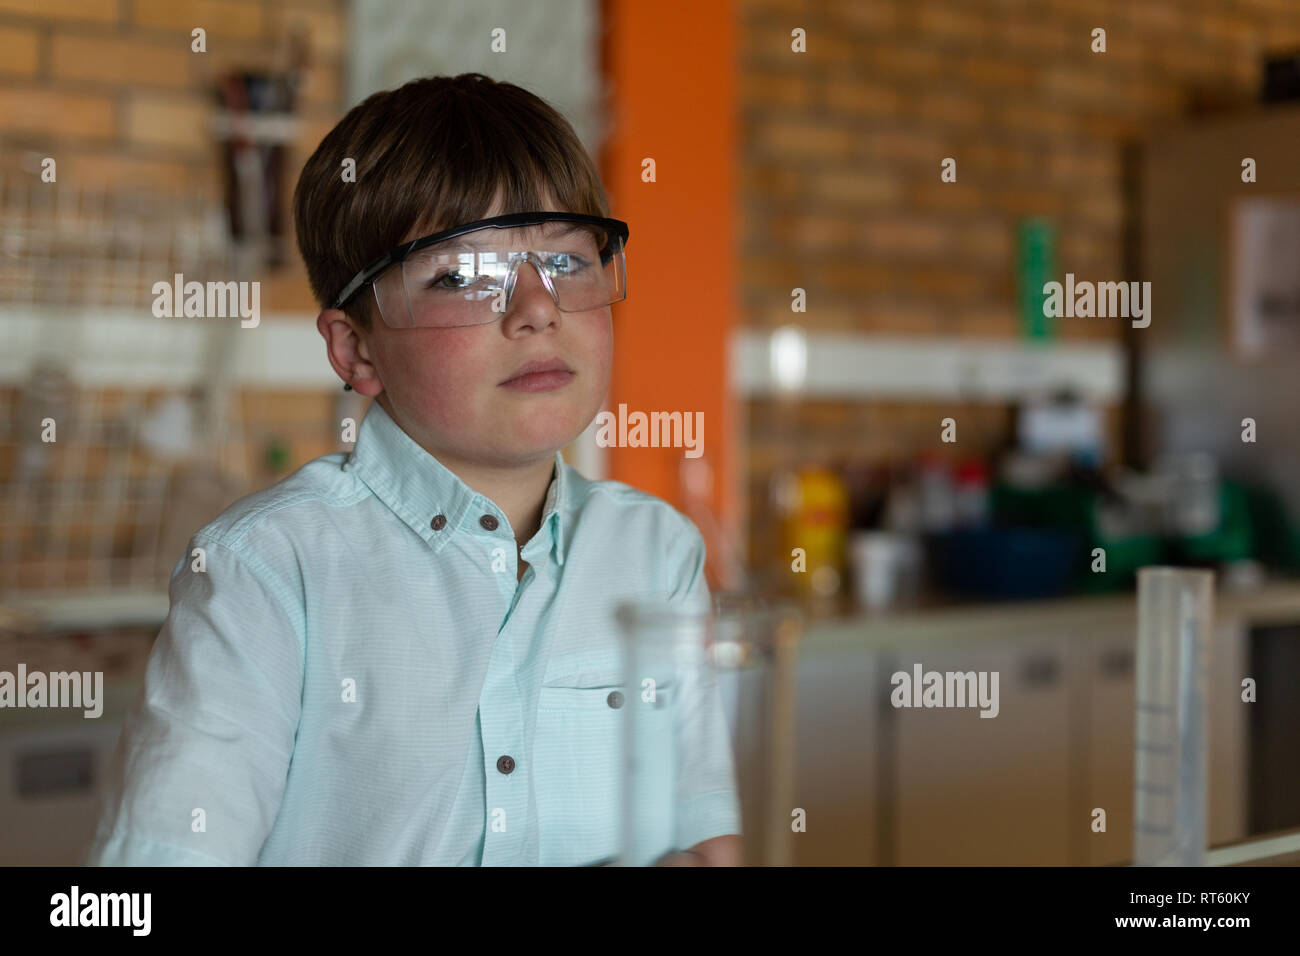 Schoolboy with protective eyewear looking at camera - Stock Image